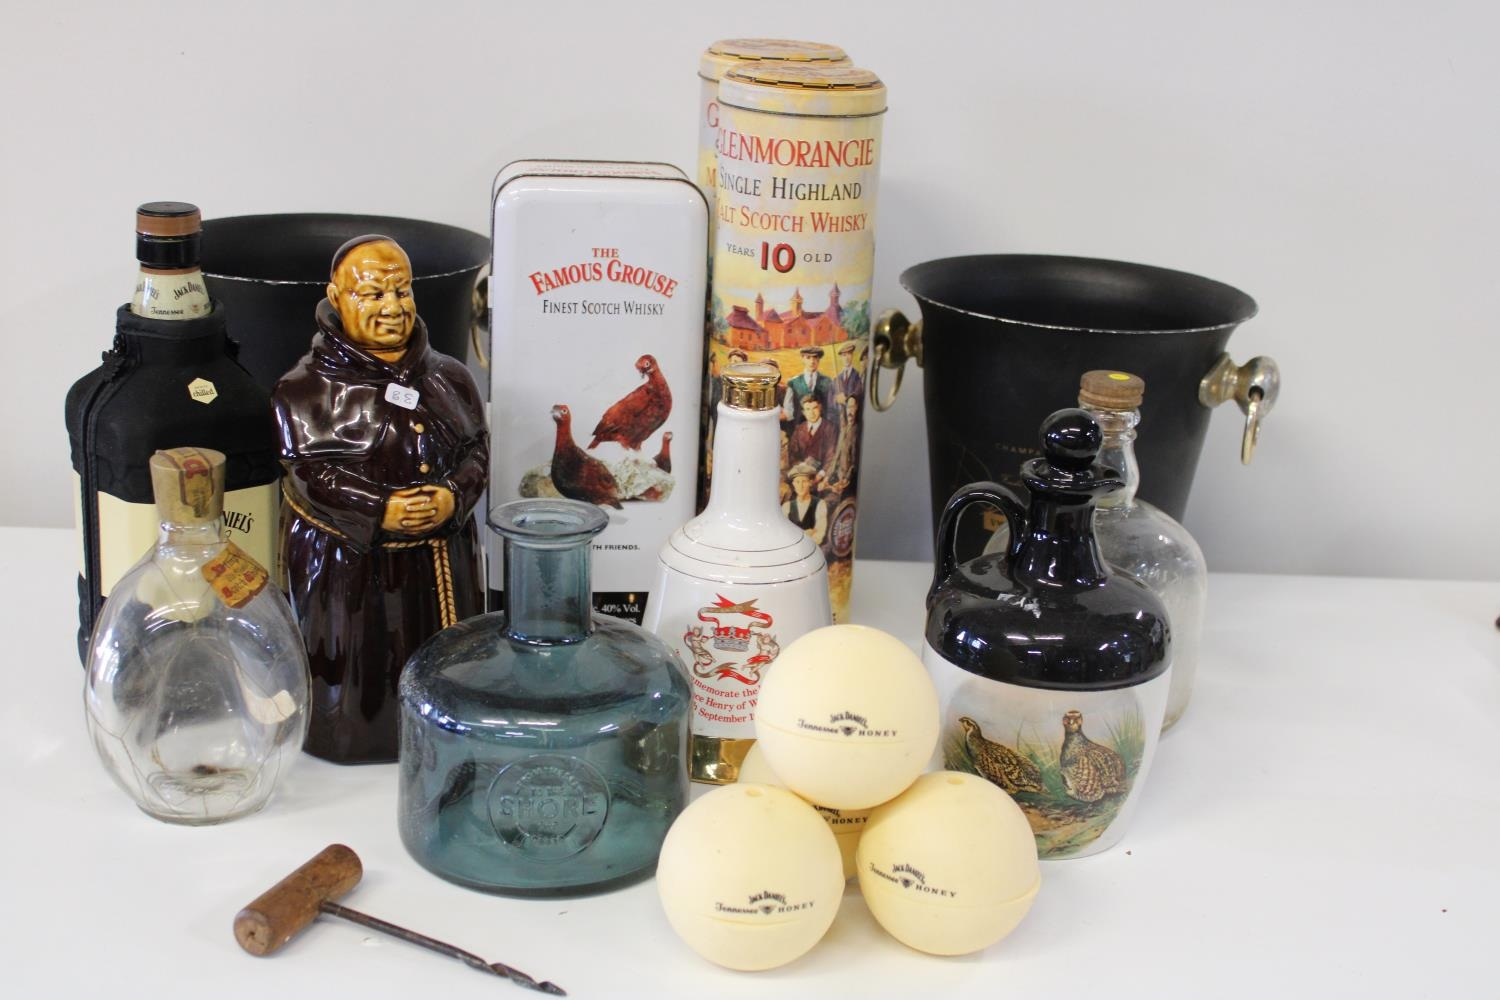 A job lot of vintage breweriana items, ice buckets, decanters, tins etc